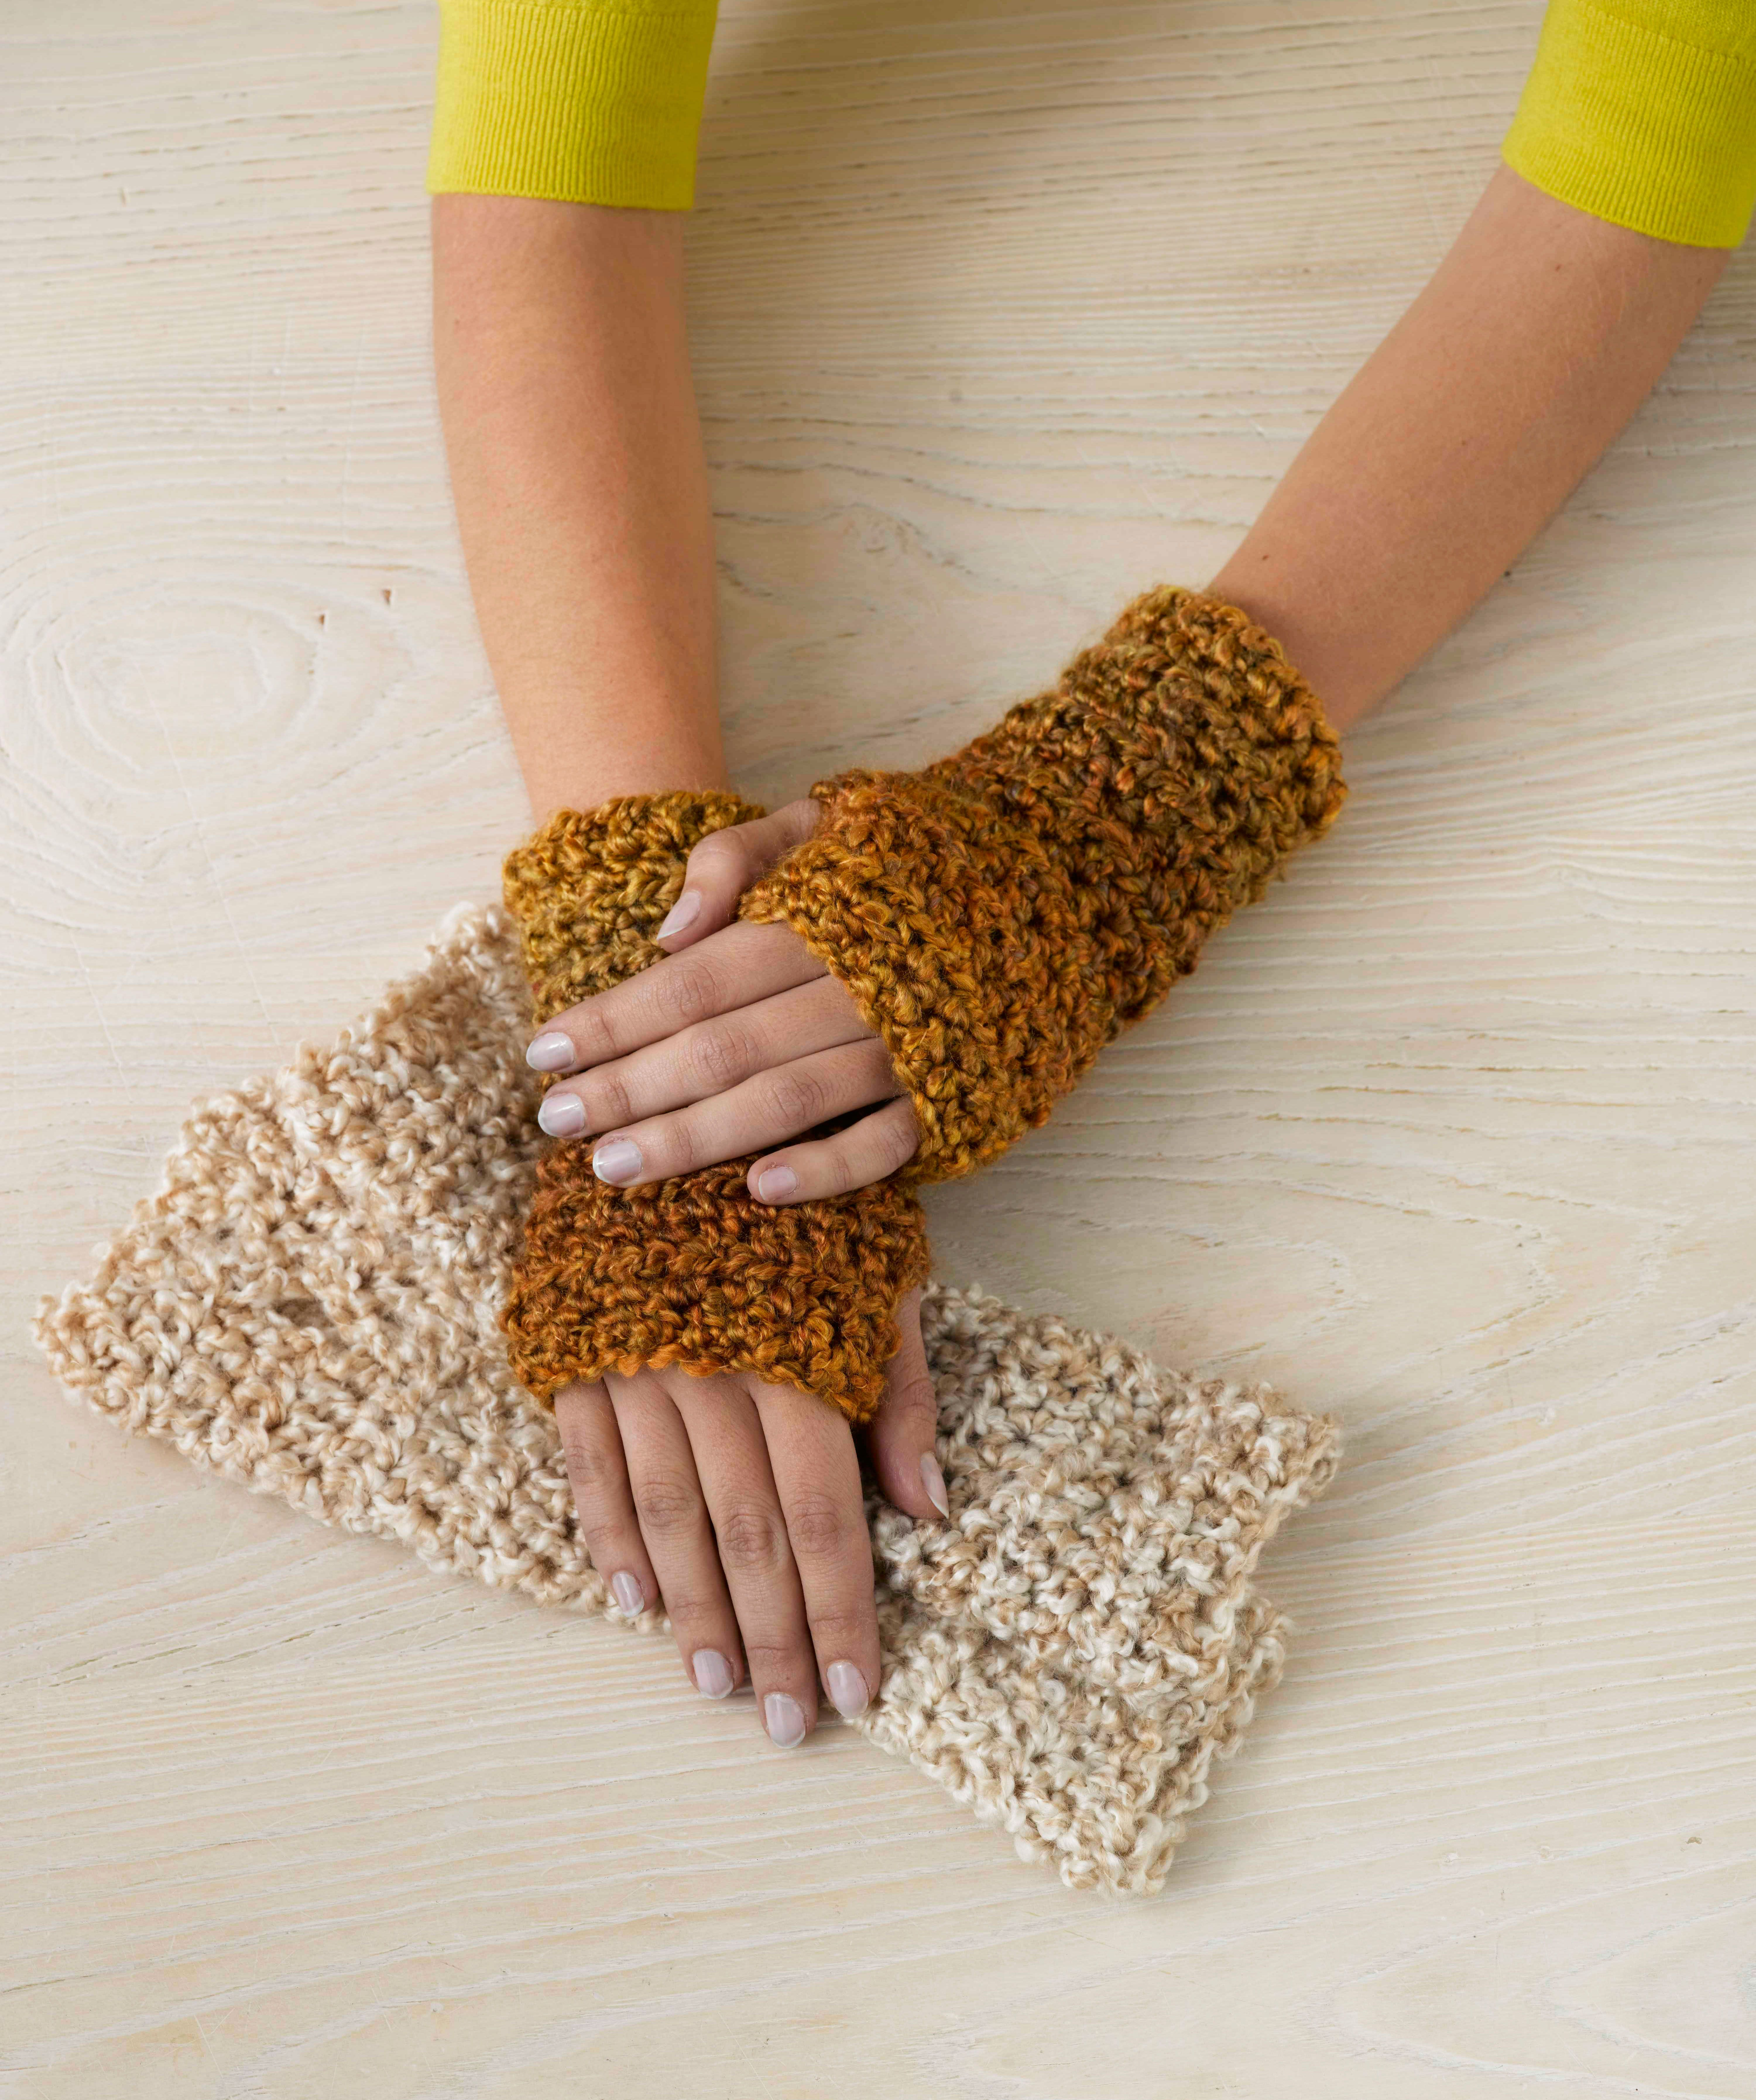 Httplionbrandorigpics90644adag needles pinterest items similar to wrist warmers choose your color fingerless gloves texting gloves fingerless mittens womens accessories mens accessories gaming gloves gift dt1010fo